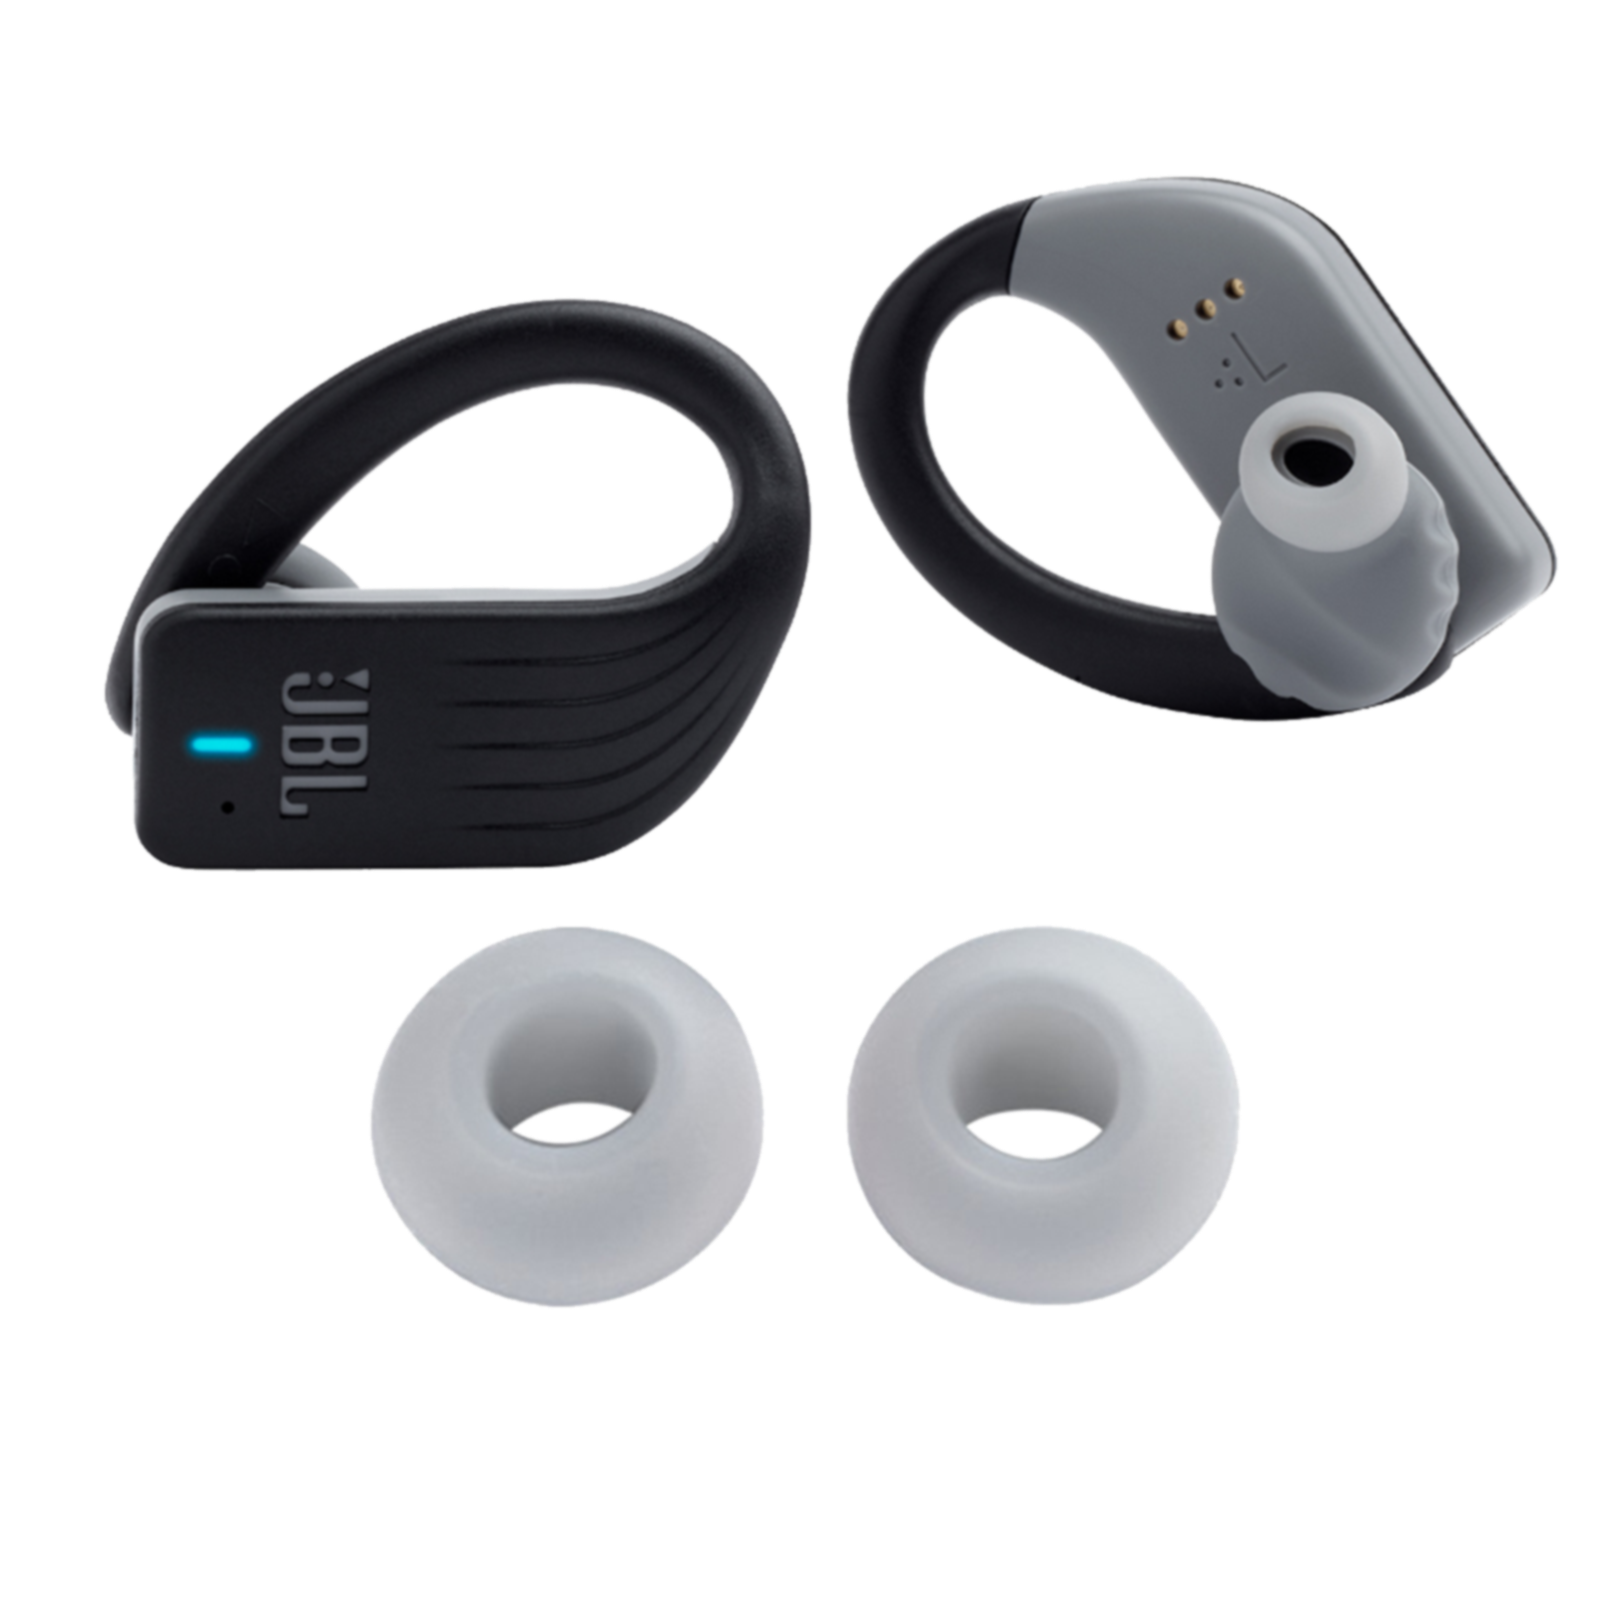 JBL Endurance PEAK replacement kit - Black - Ear buds, ear tips and enhancers - Hero